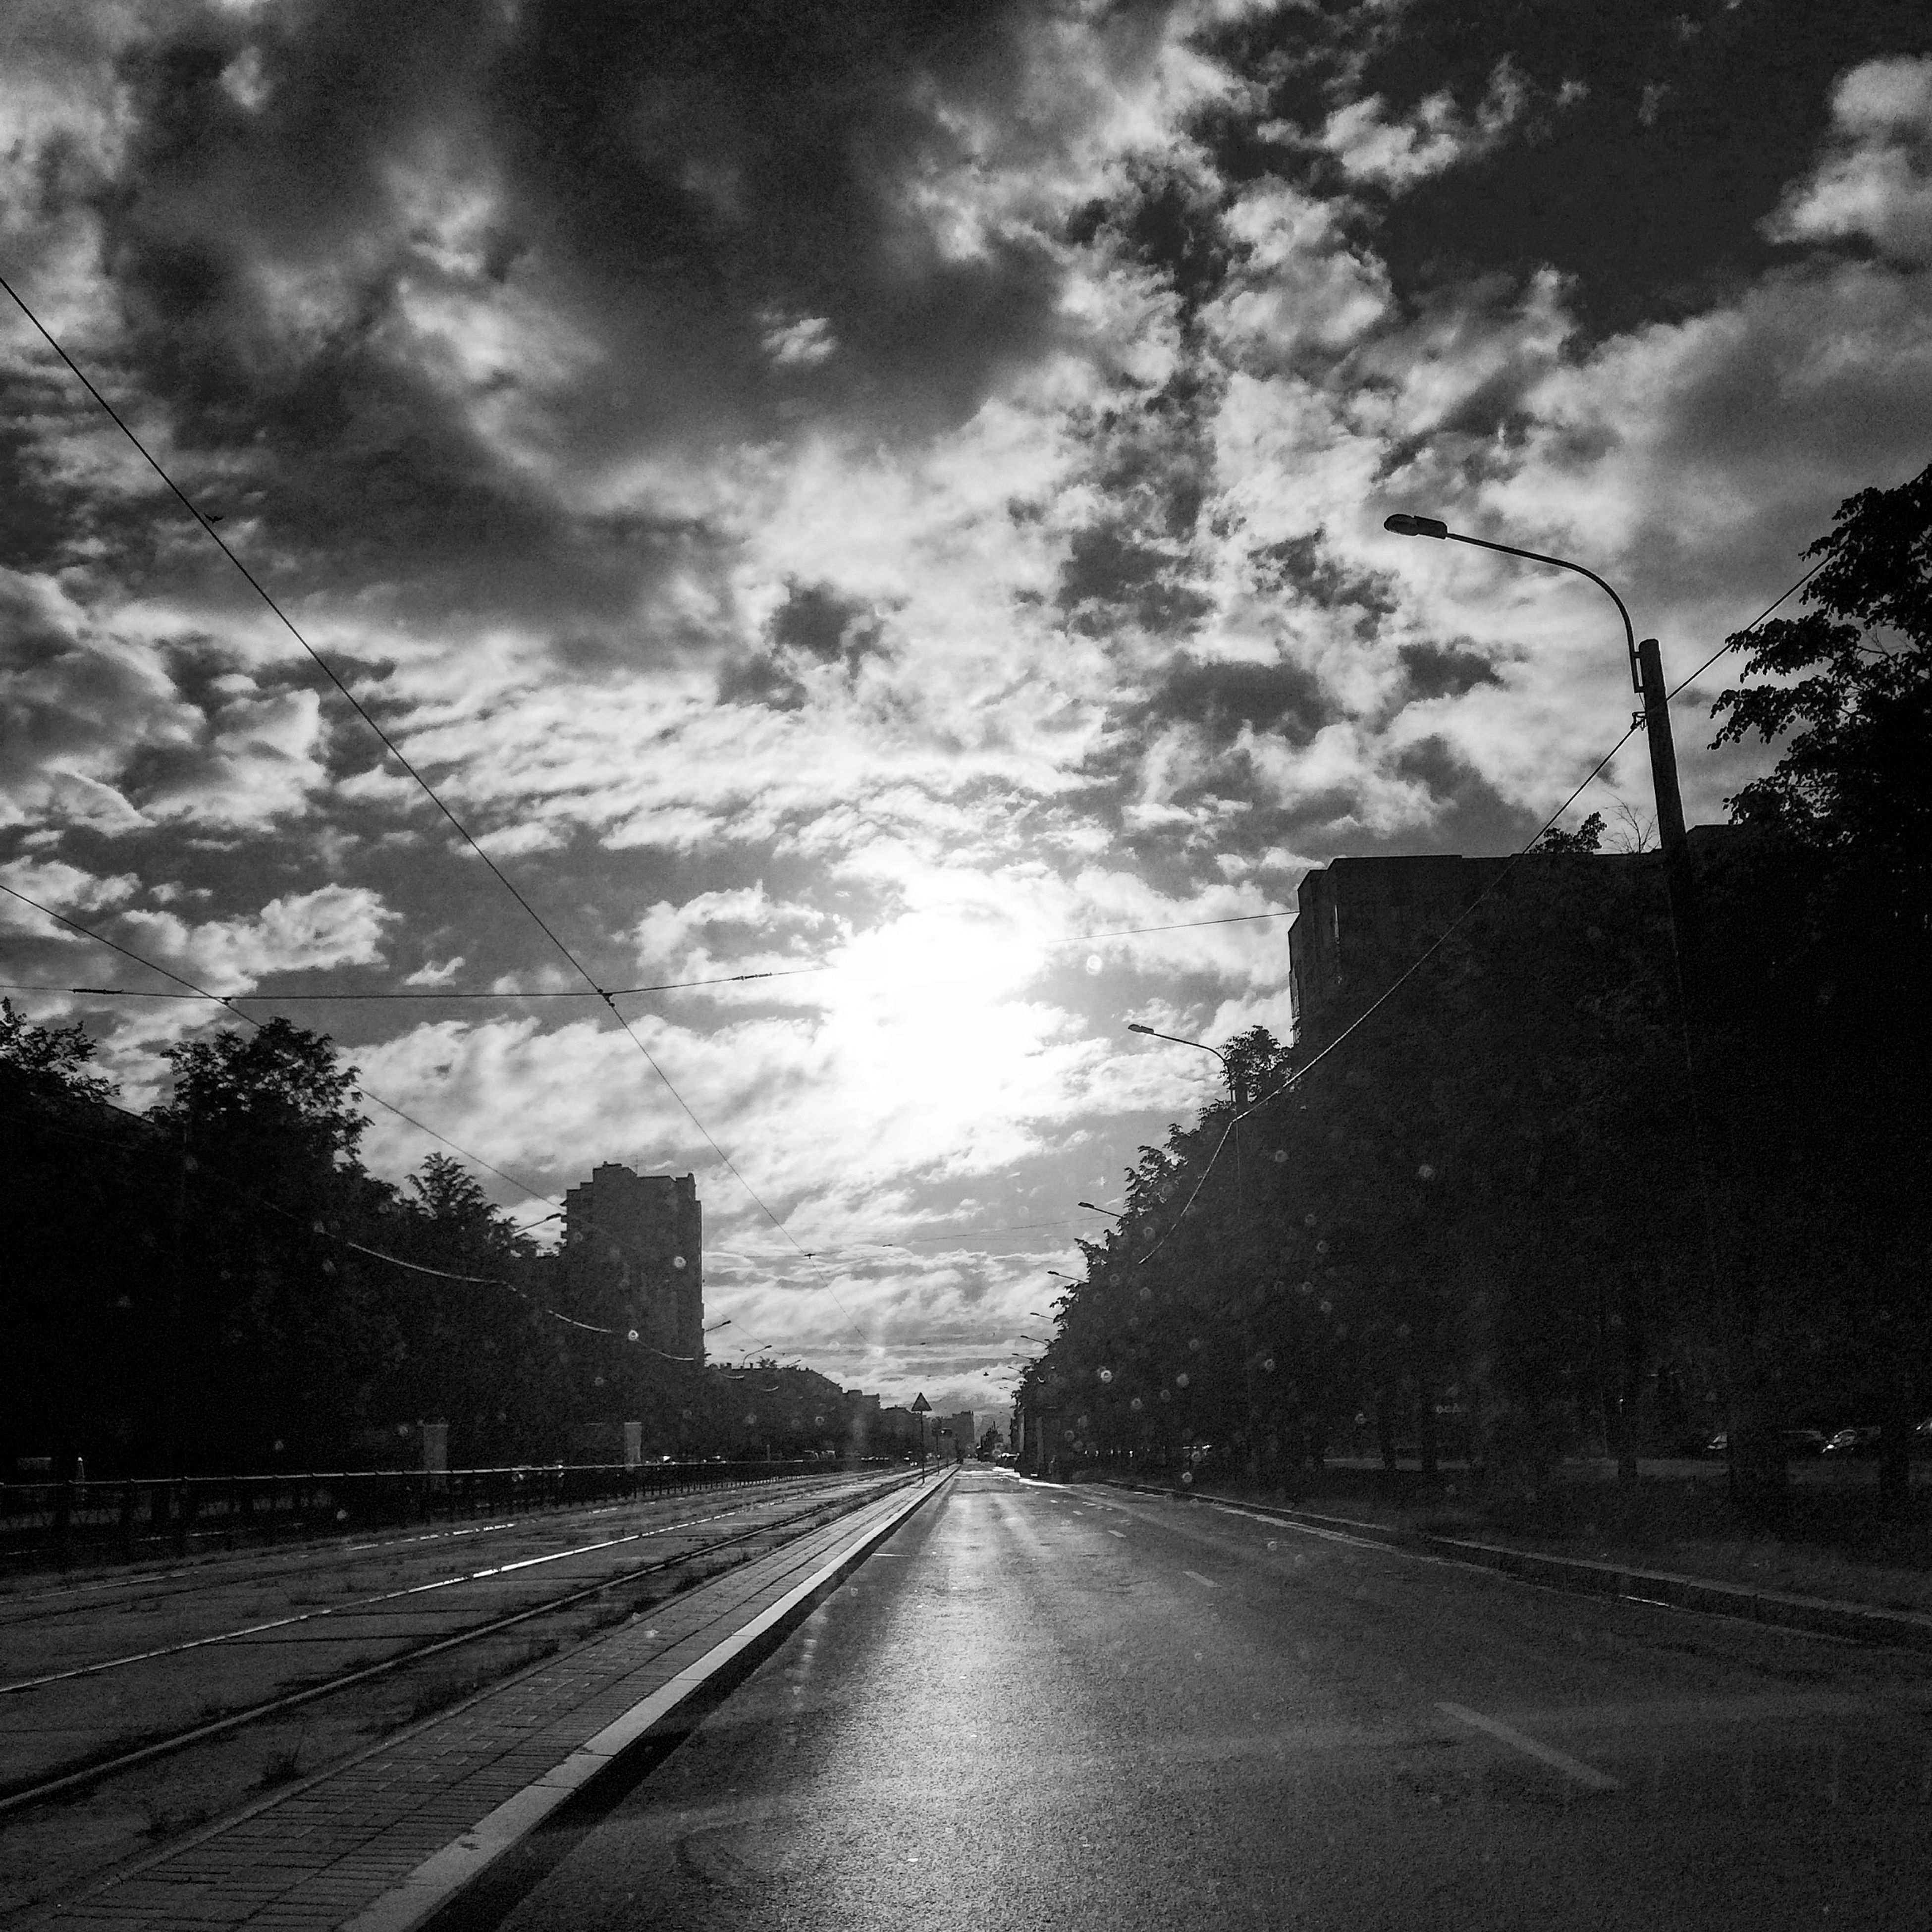 the way forward, sky, cloud - sky, road, diminishing perspective, transportation, vanishing point, cloudy, cloud, tree, street, empty road, country road, empty, nature, road marking, outdoors, tranquility, sunlight, weather